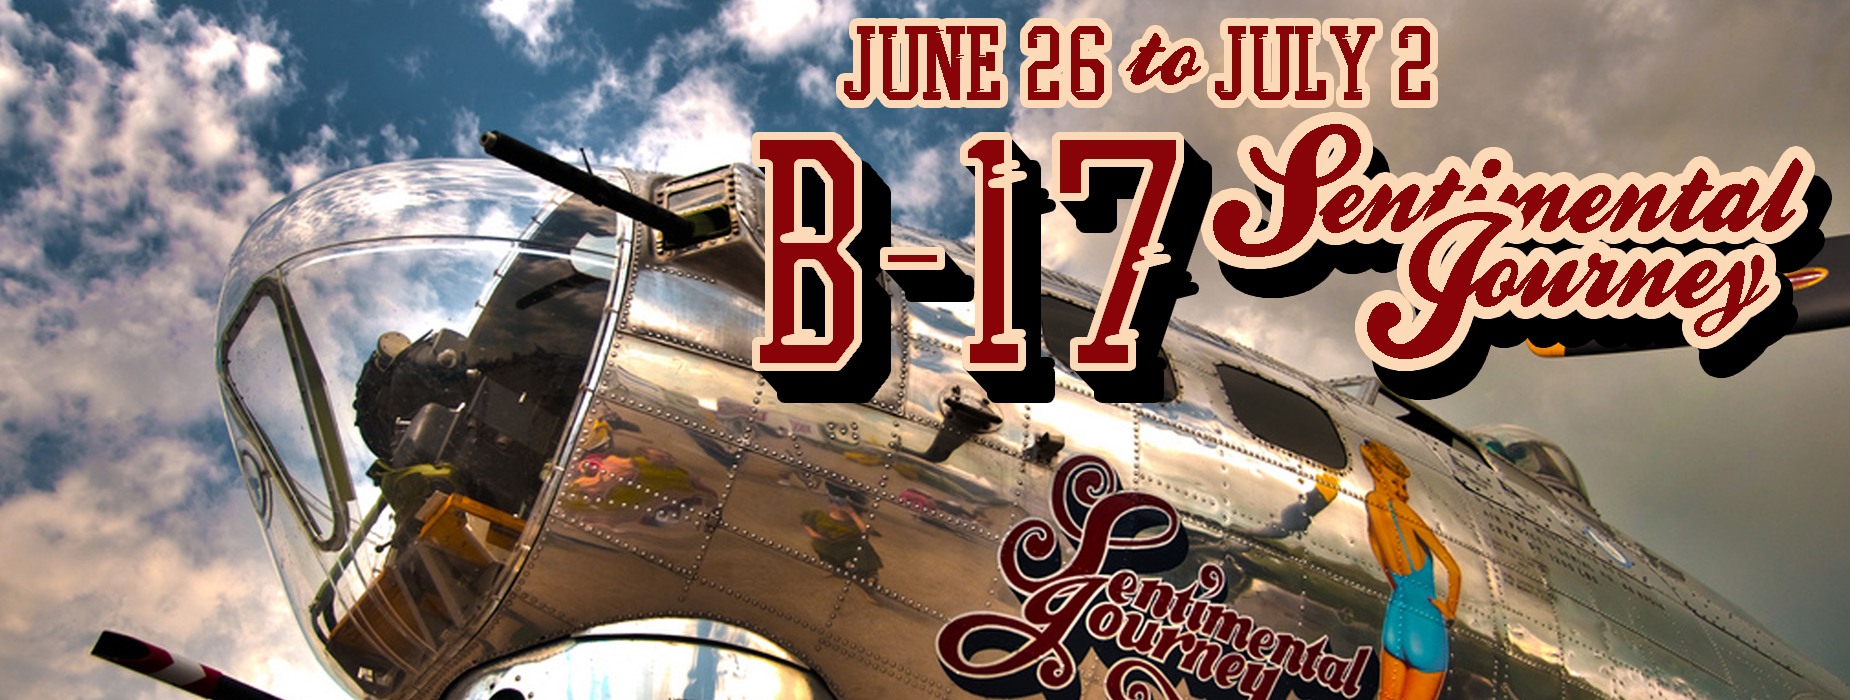 Banner Image for the B-17: A Sentimental Journey event